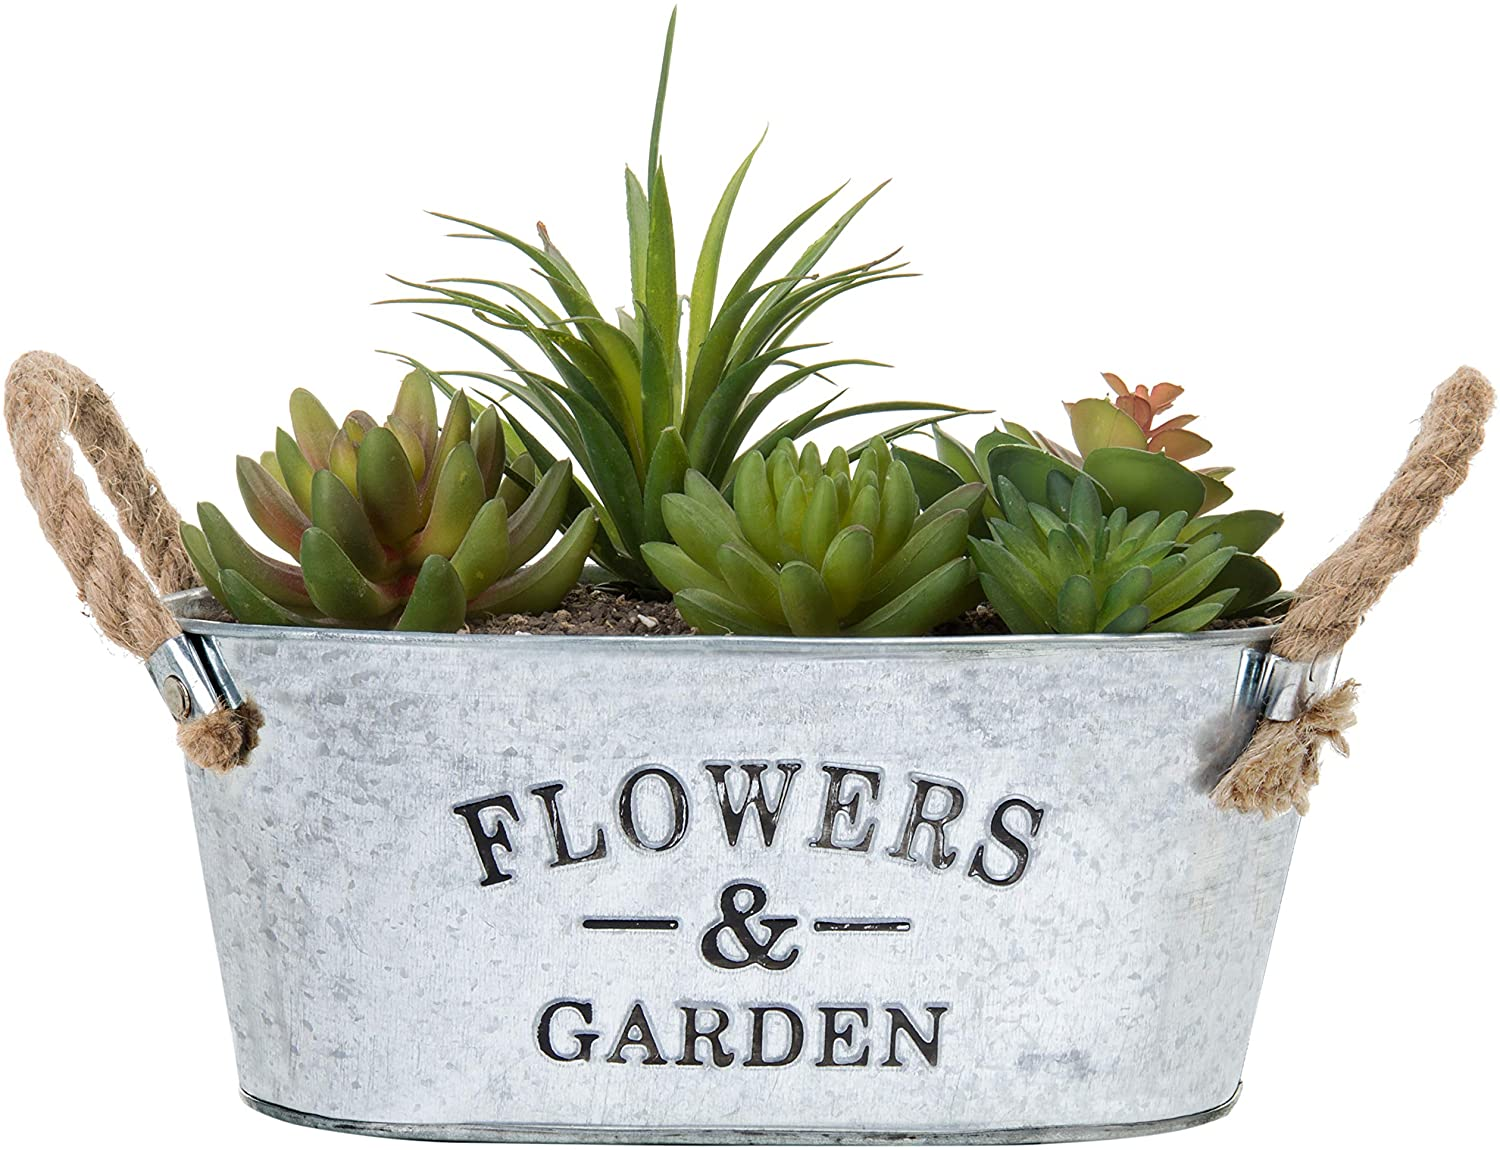 MyGift Rustic 'Flowers & Garden' Bucket Design Small Metal Succulent Plant Container w/Twine Handles